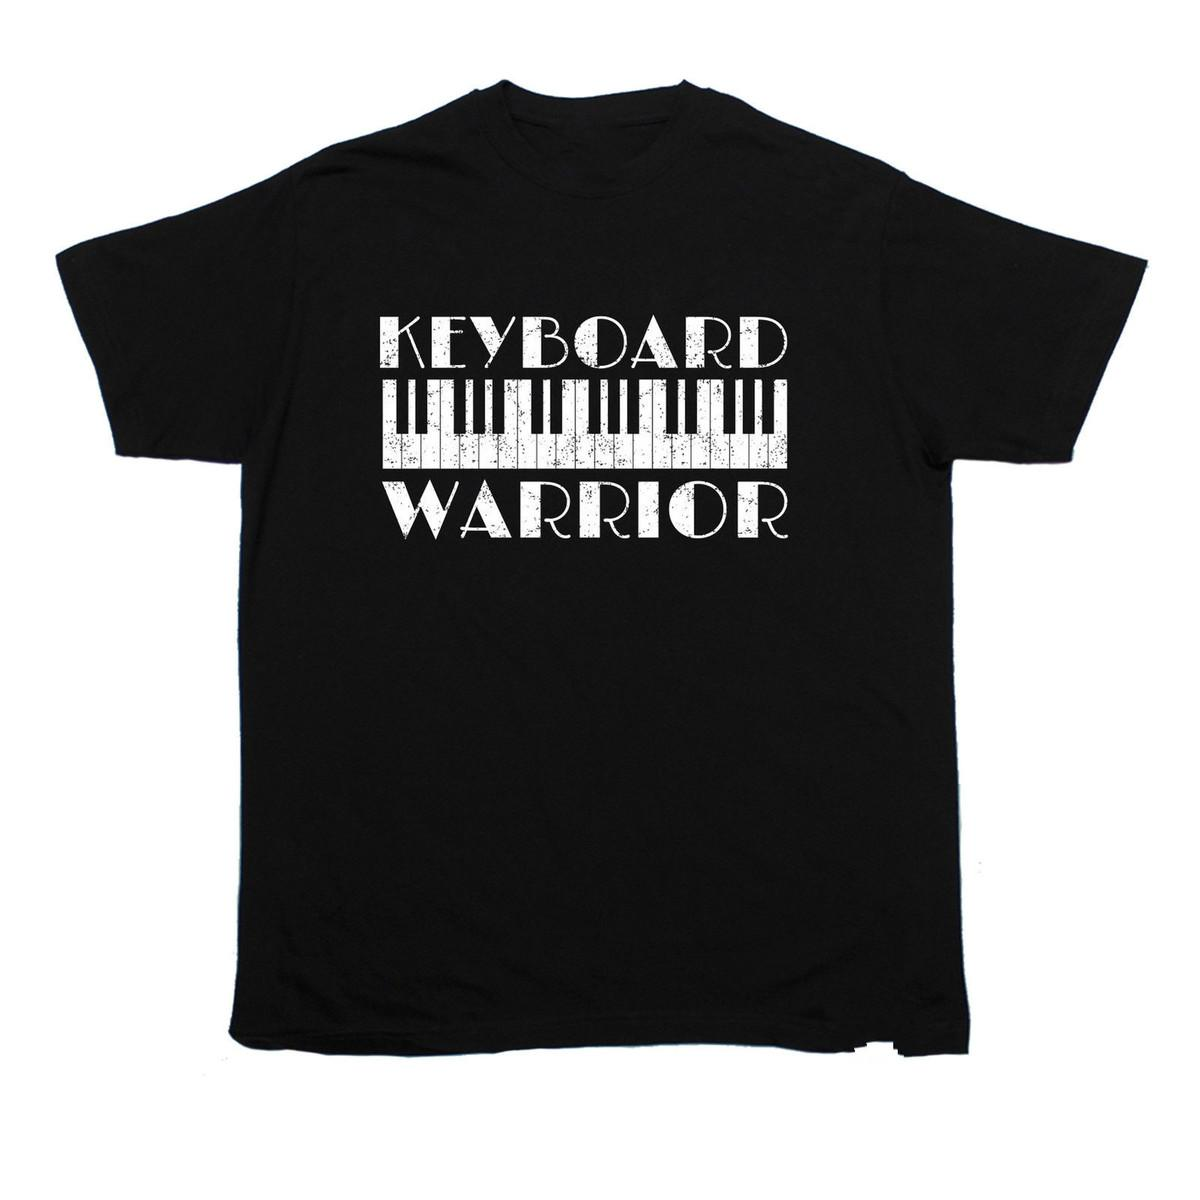 Keyboard Warrior T-SHIRT Band Music Piano Fashion Funny Present birthday gift Youth Round Collar Customized T-Shirts top tee